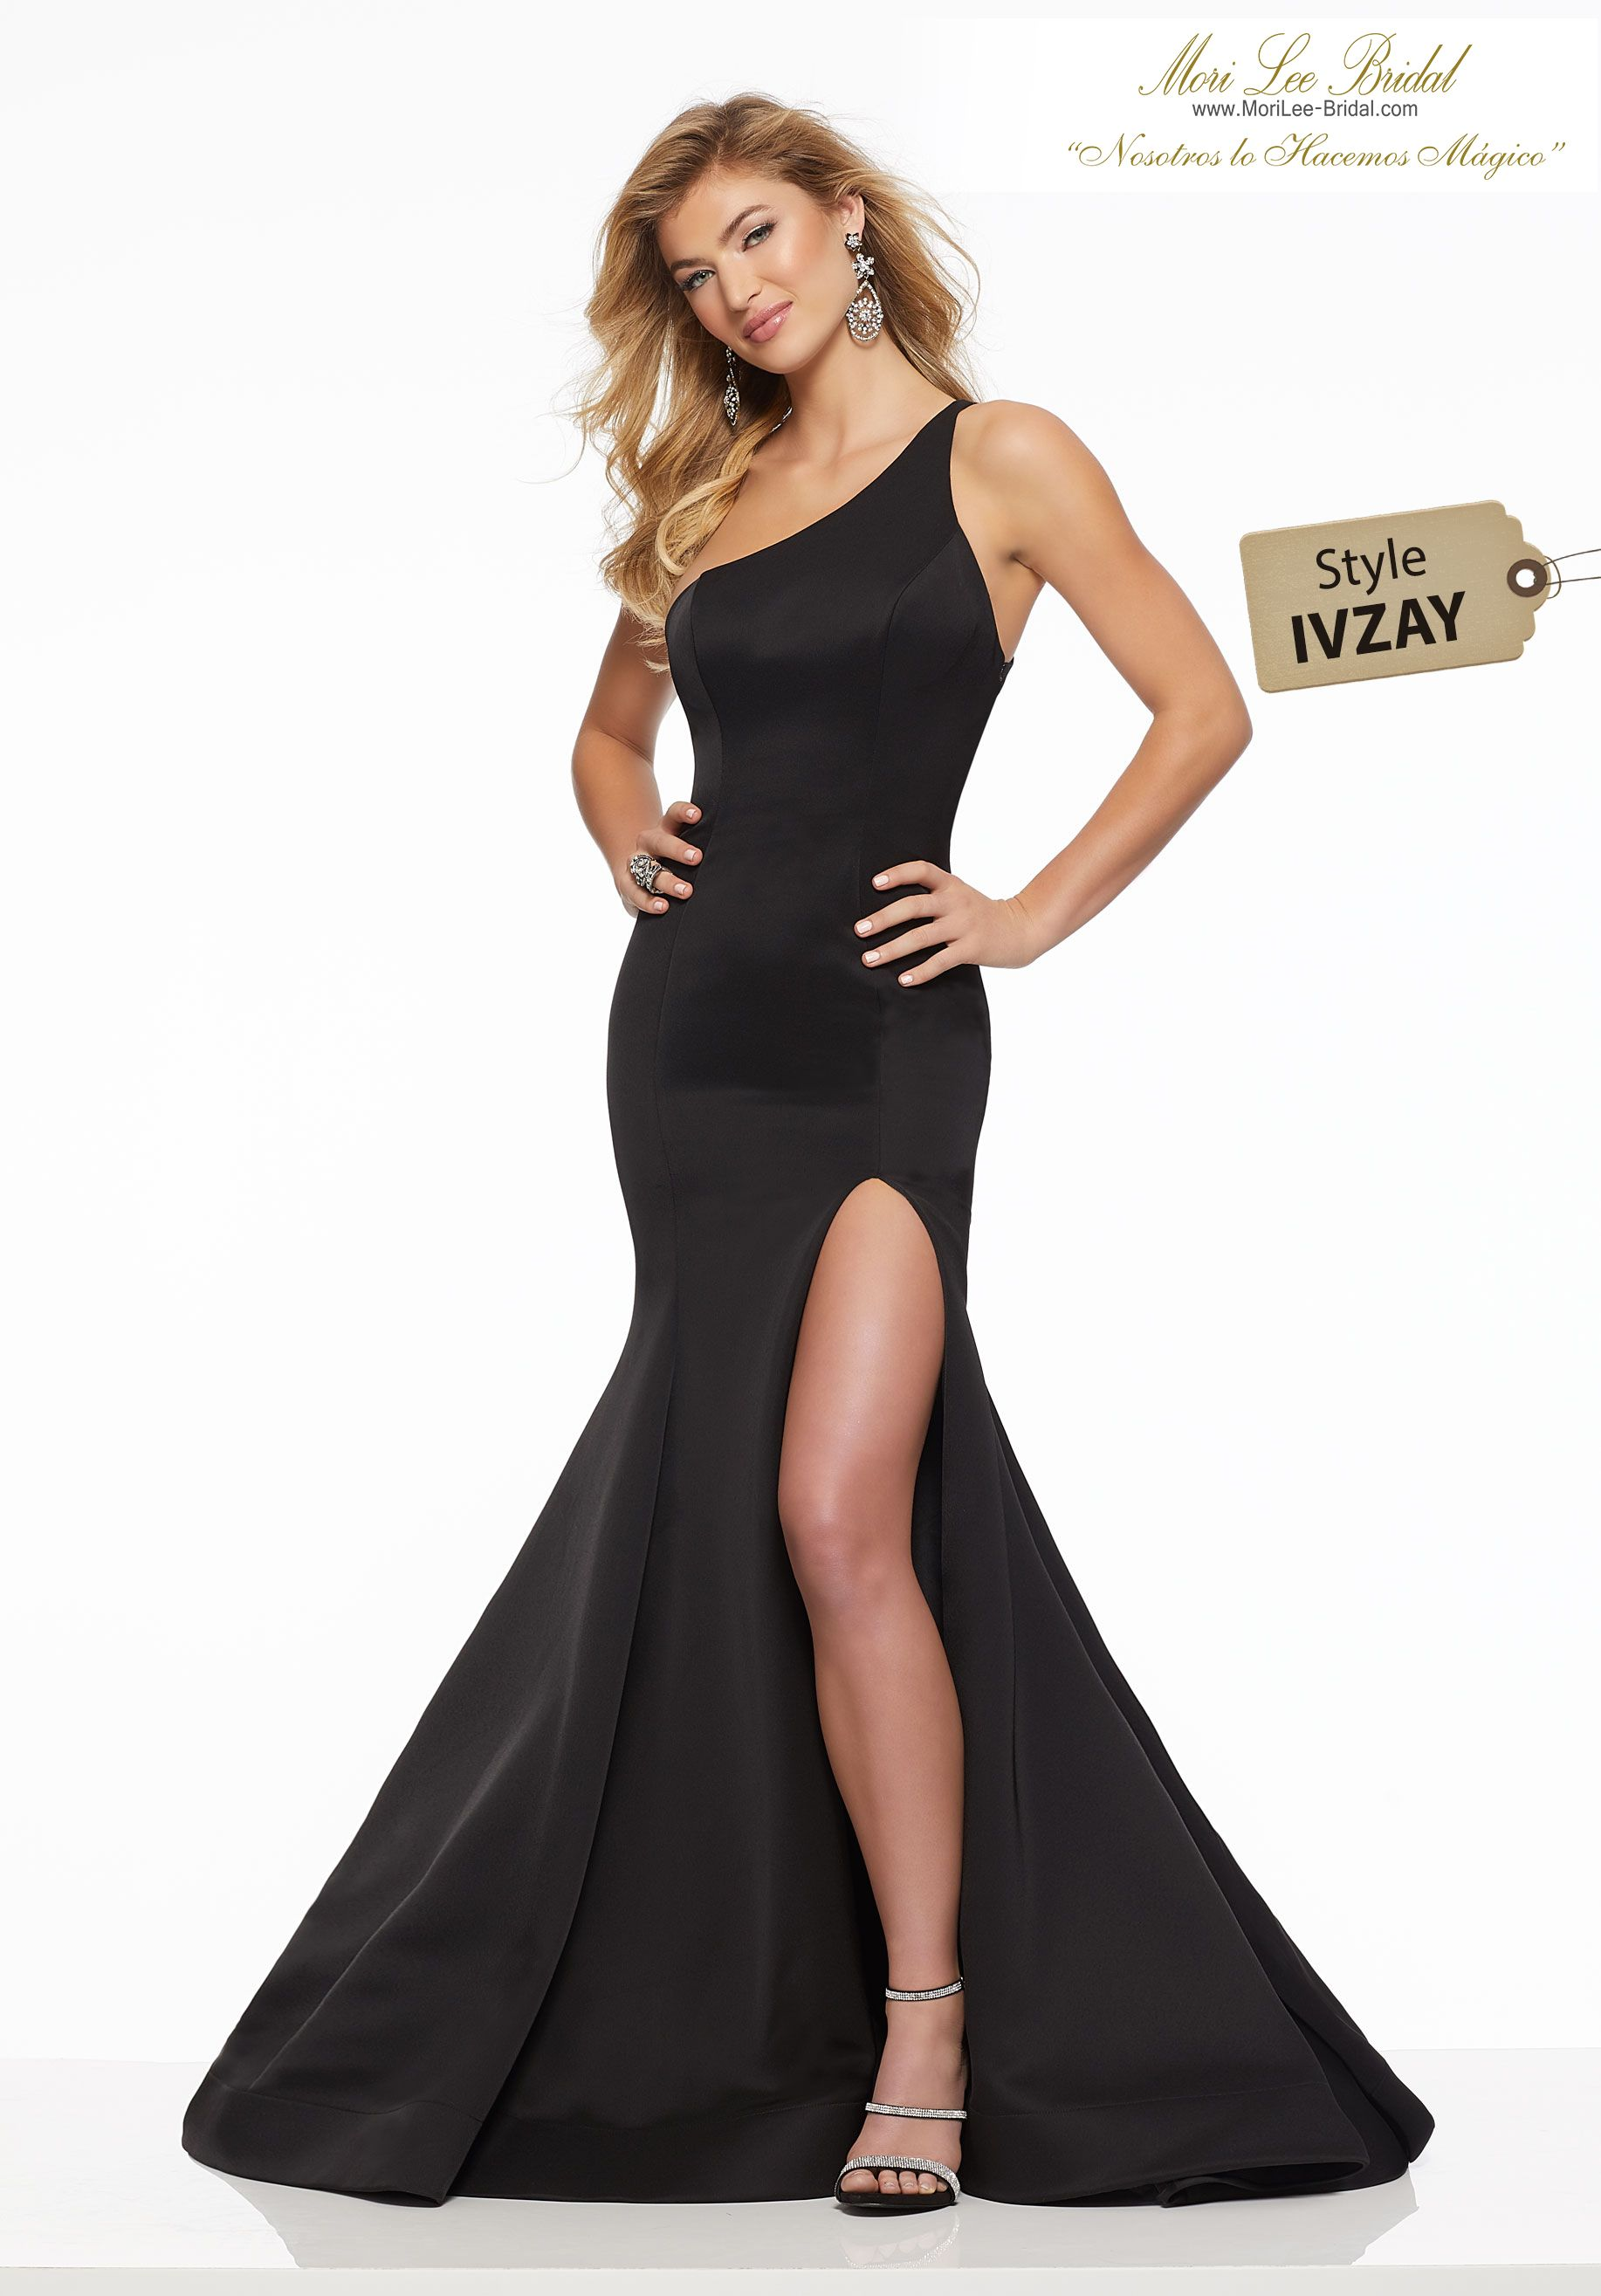 601a5e983cf Jersey Chic One Shoulder Jersey Prom Gown Featuring a High Side Slit.  Sizing  00